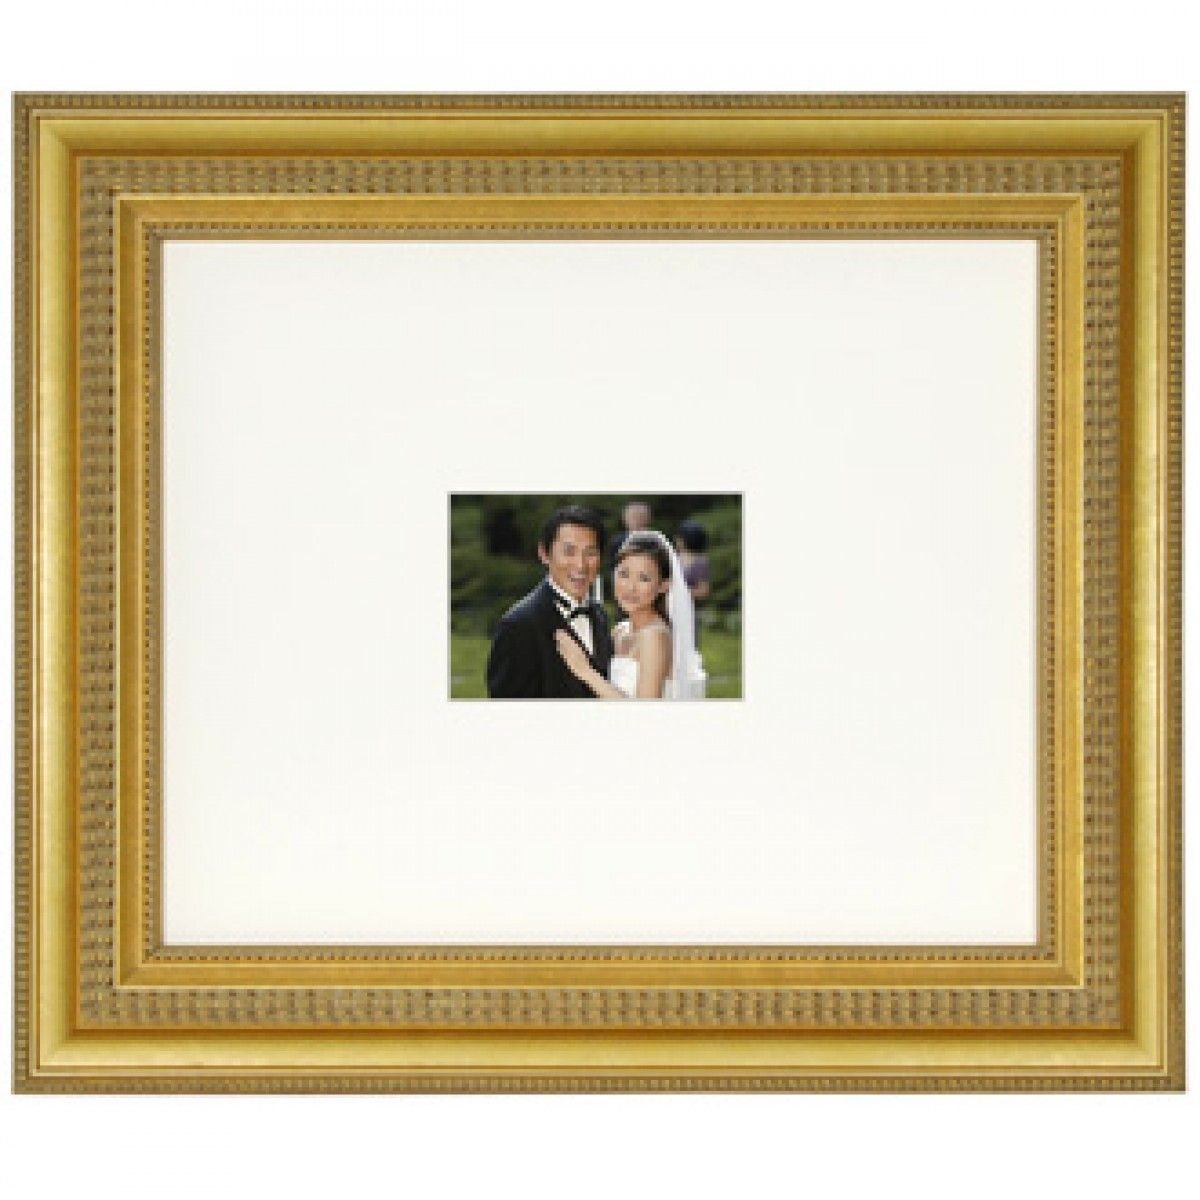 Old Town Signature Collection Frame In Gold Rope Discount Online Shopping Signature Collection Old Town